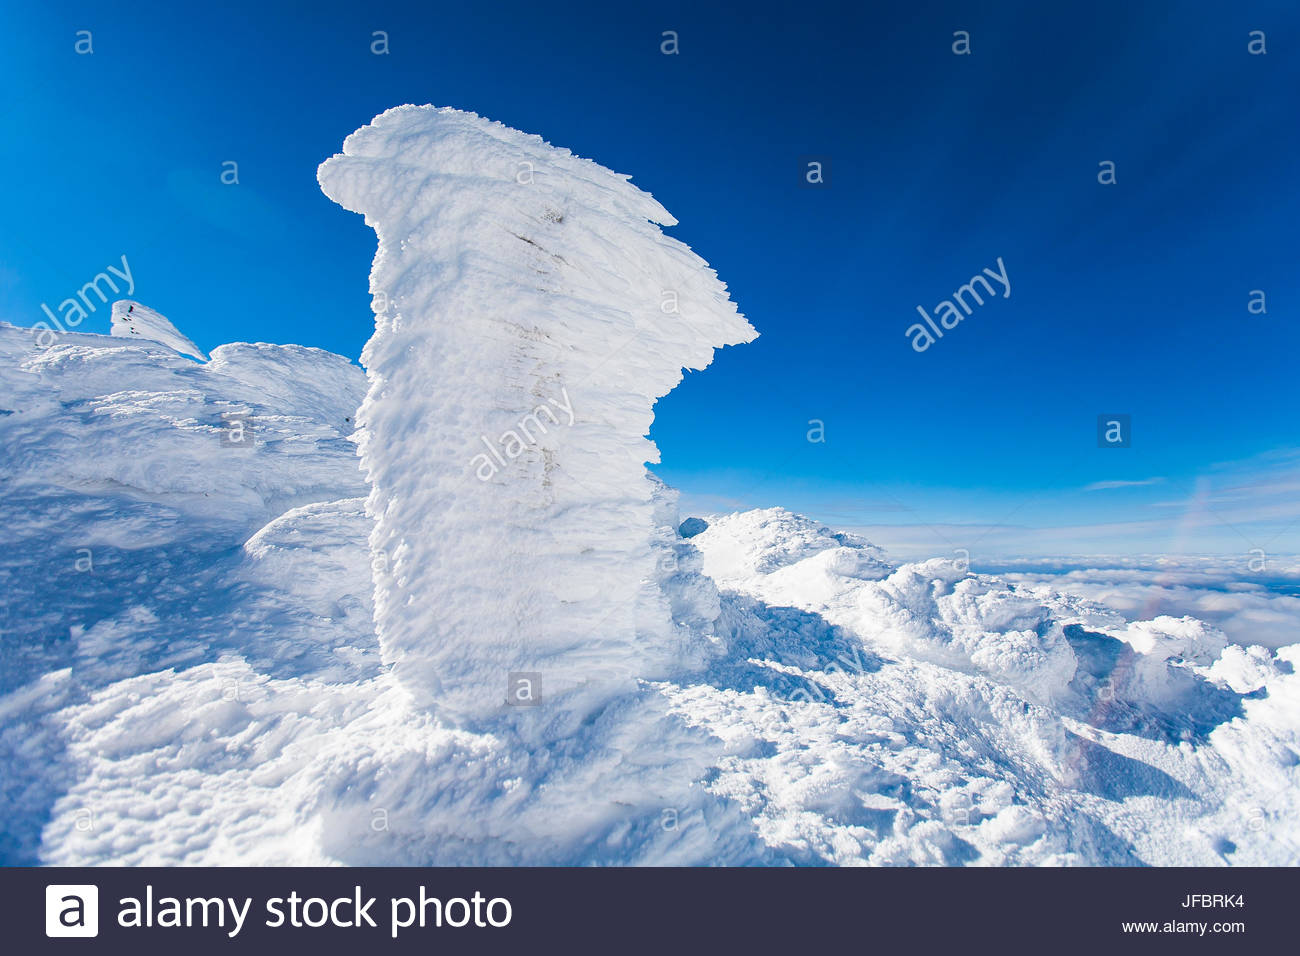 Rime ice covers everything on the summit of Mount Washington in sub zero temperatures at an elevation of 6,288 feet. - Stock Image